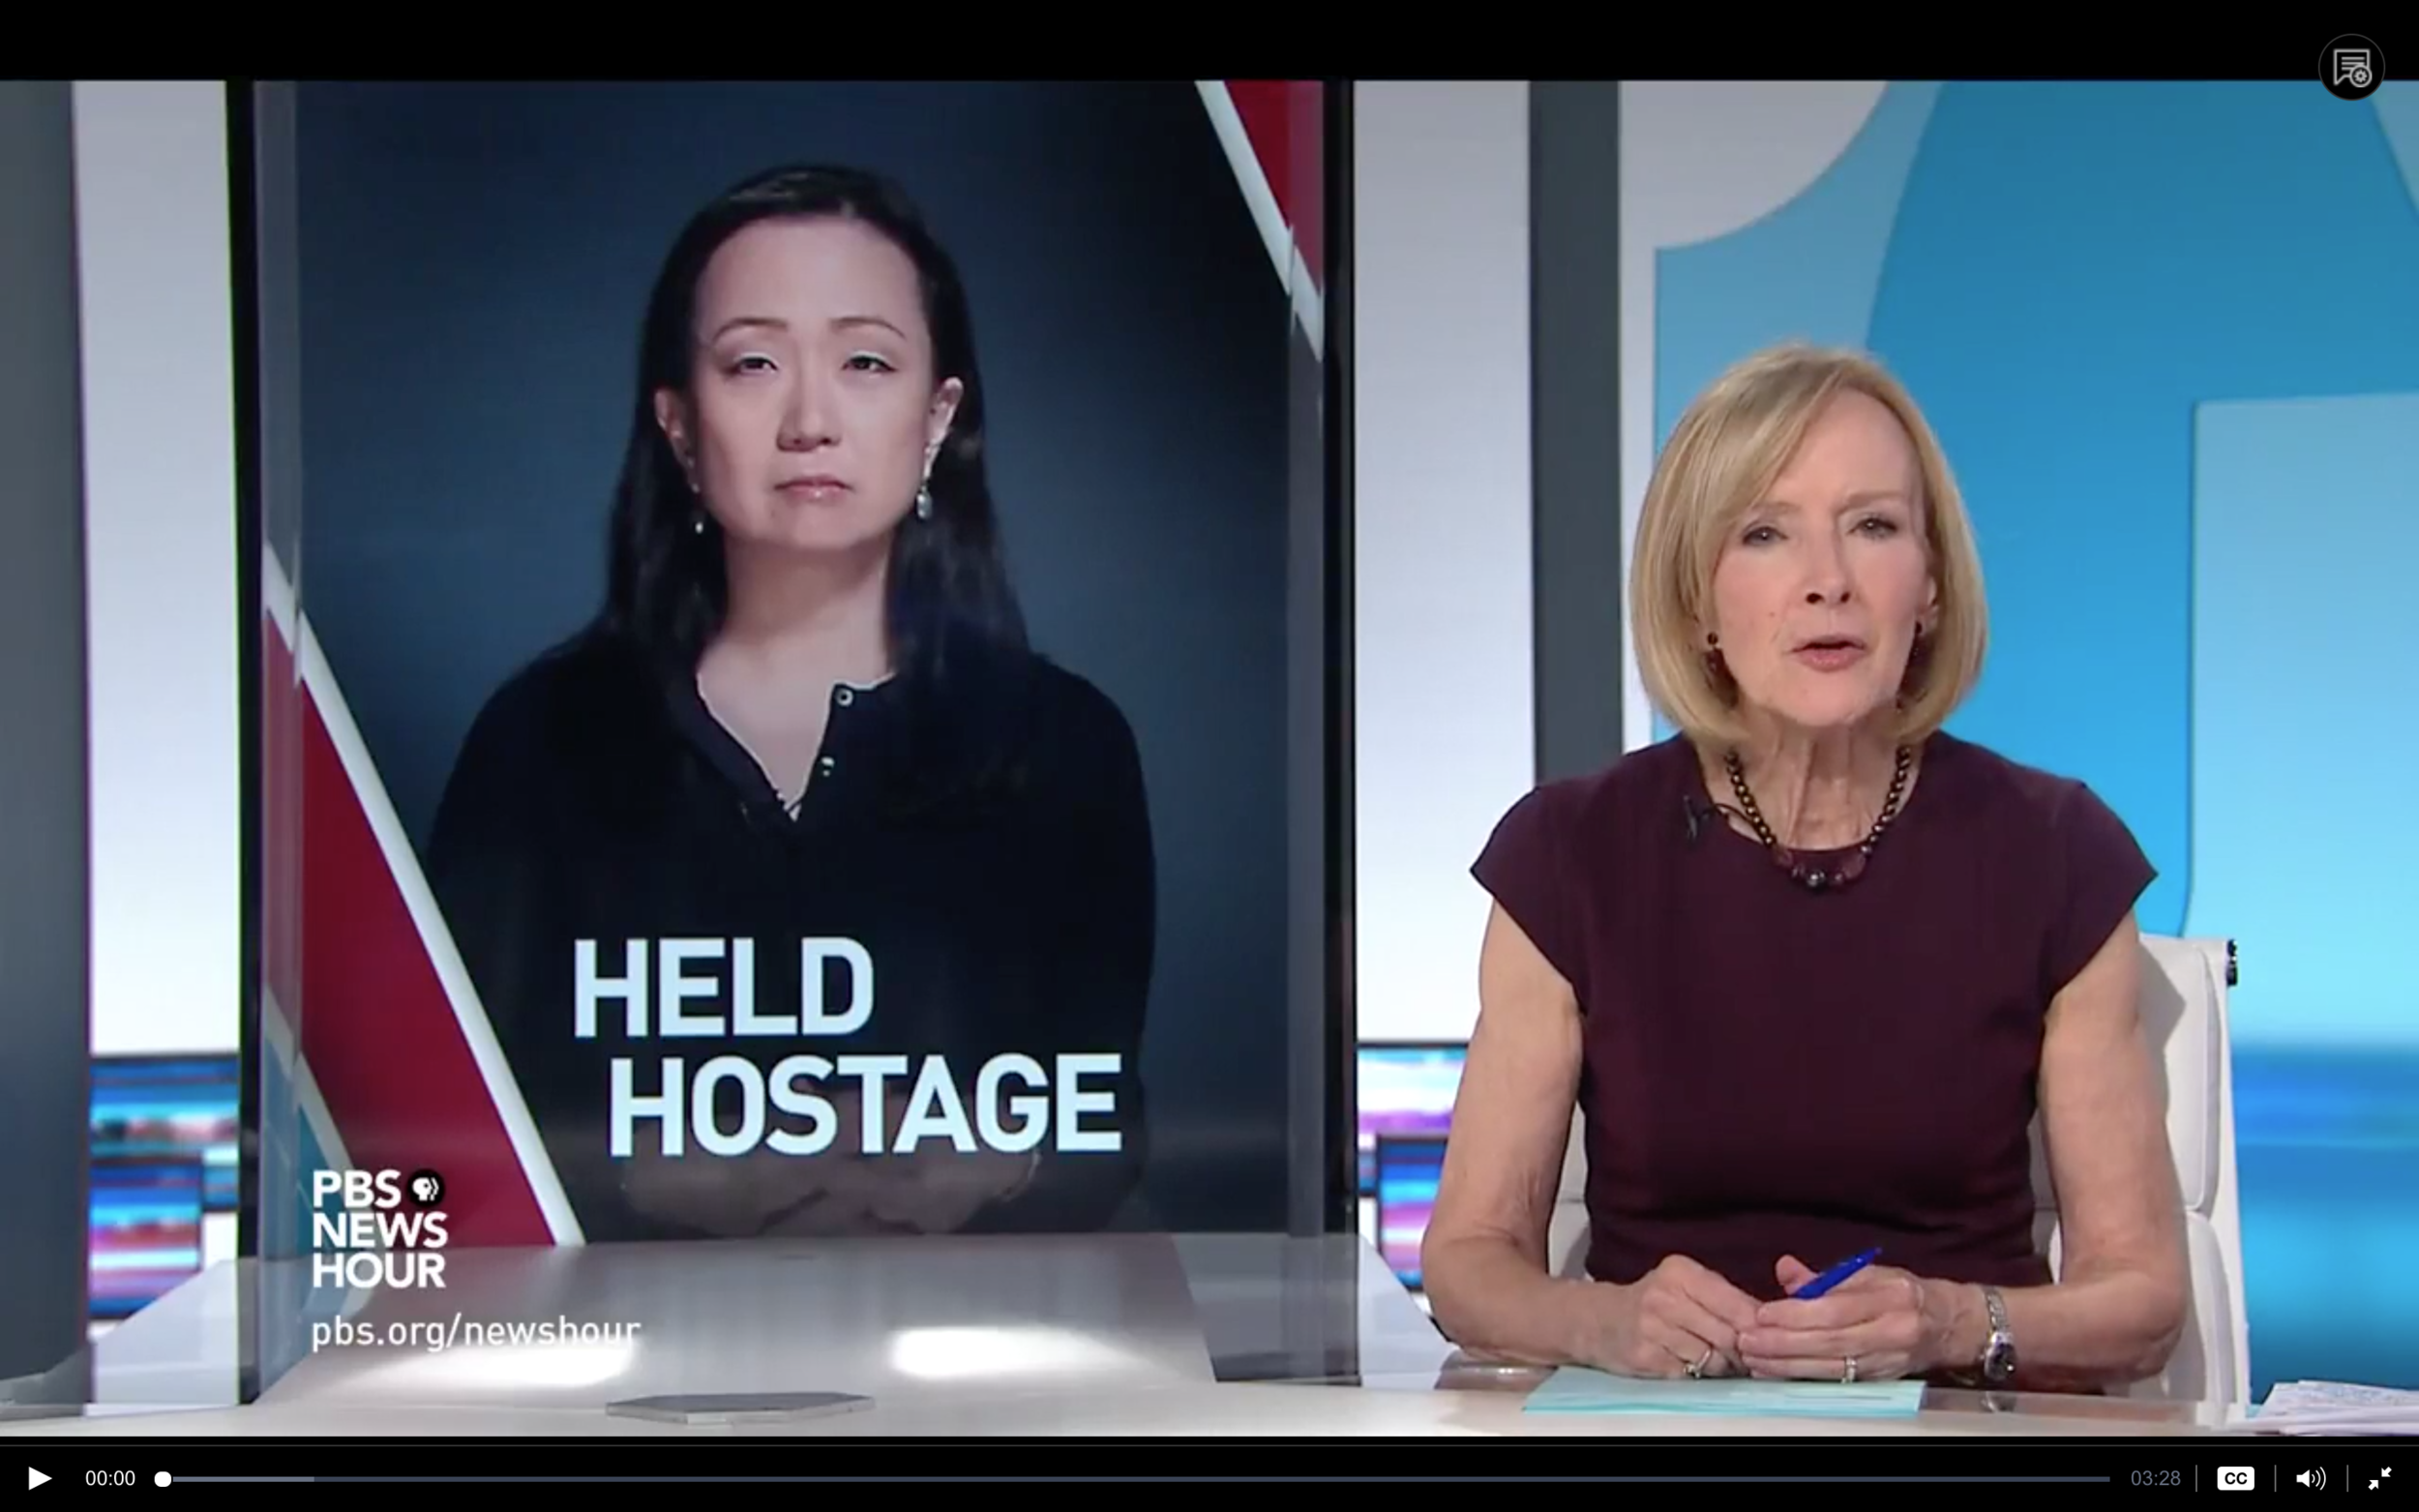 https://www.pbs.org/newshour/show/when-we-talk-about-north-korea-we-forget-whats-happening-to-its-people